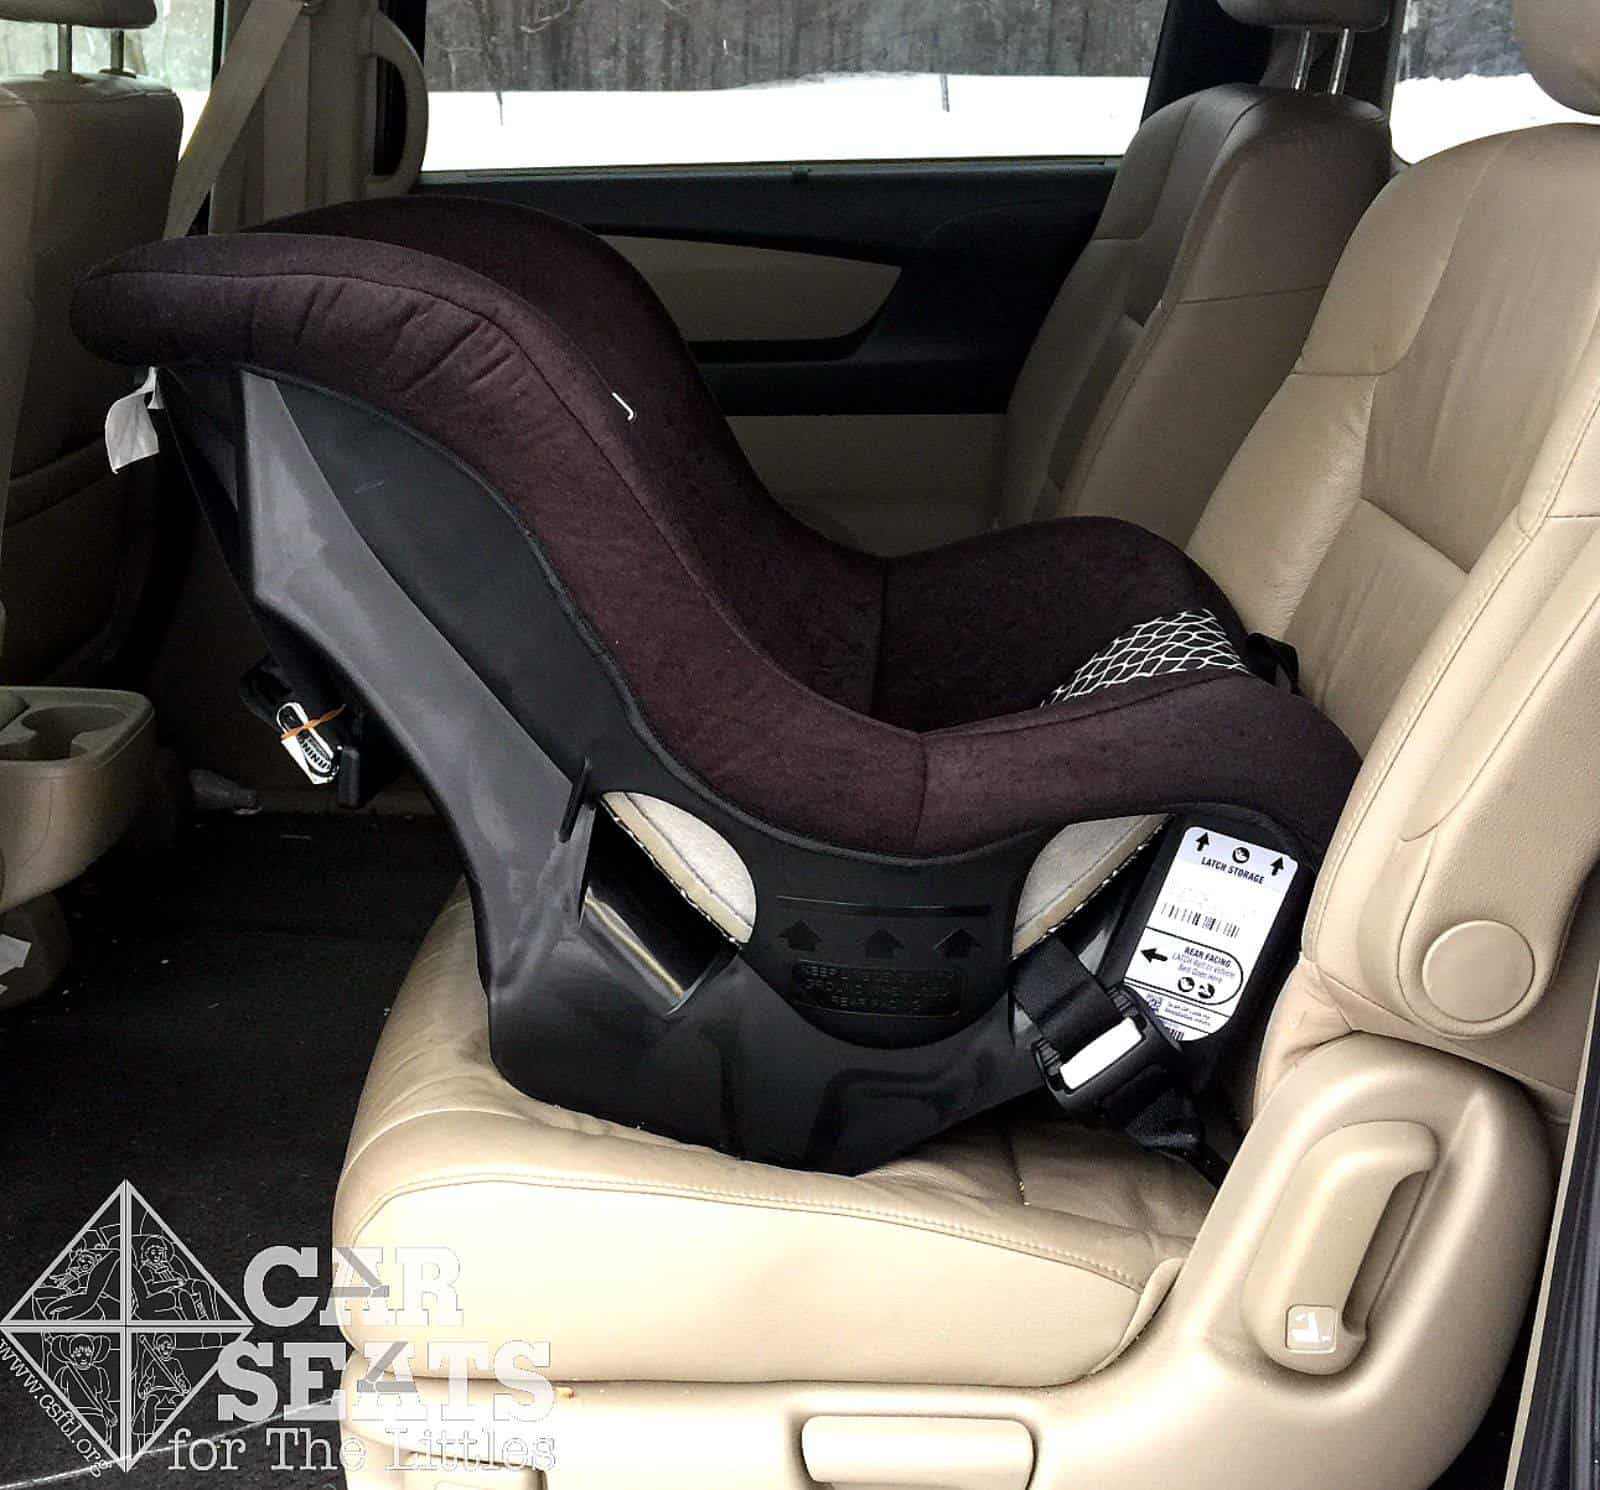 Brilliant Will Keep Most Children Safelyrear Facing Until Consumer Reports 2015 Convertible Crash Test Results Car Seats For Cosco Scenera Next Retails For baby Cosco Car Seat